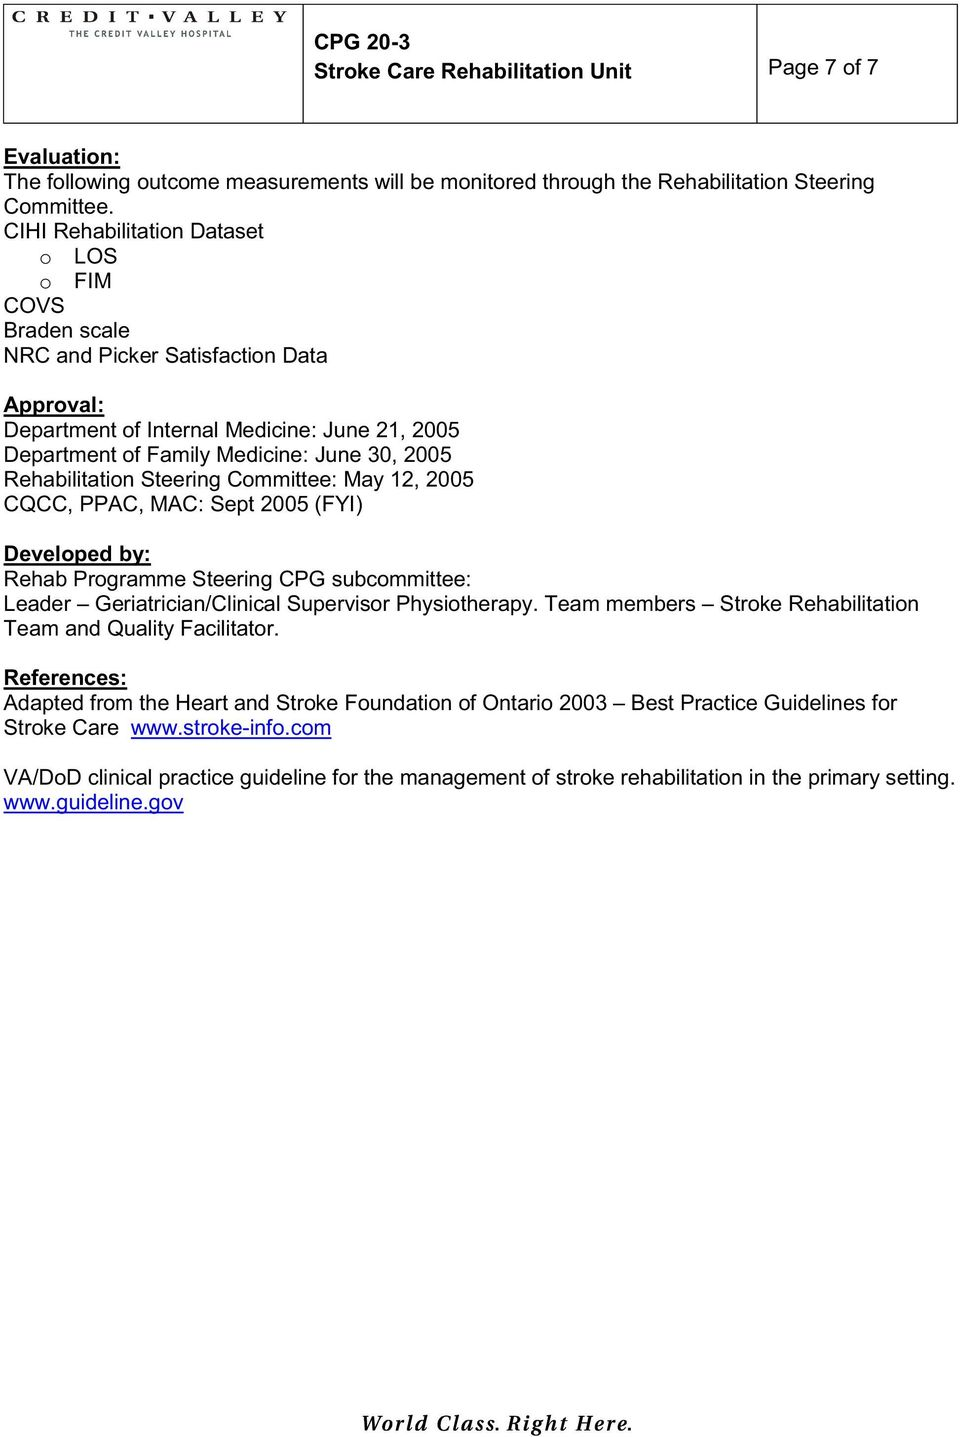 Rehabilitation Steering Committee: May 12, 2005 CQCC, PPAC, MAC: Sept 2005 (FYI) Developed by: Rehab Programme Steering CPG subcommittee: Leader Geriatrician/Clinical Supervisor Physiotherapy.